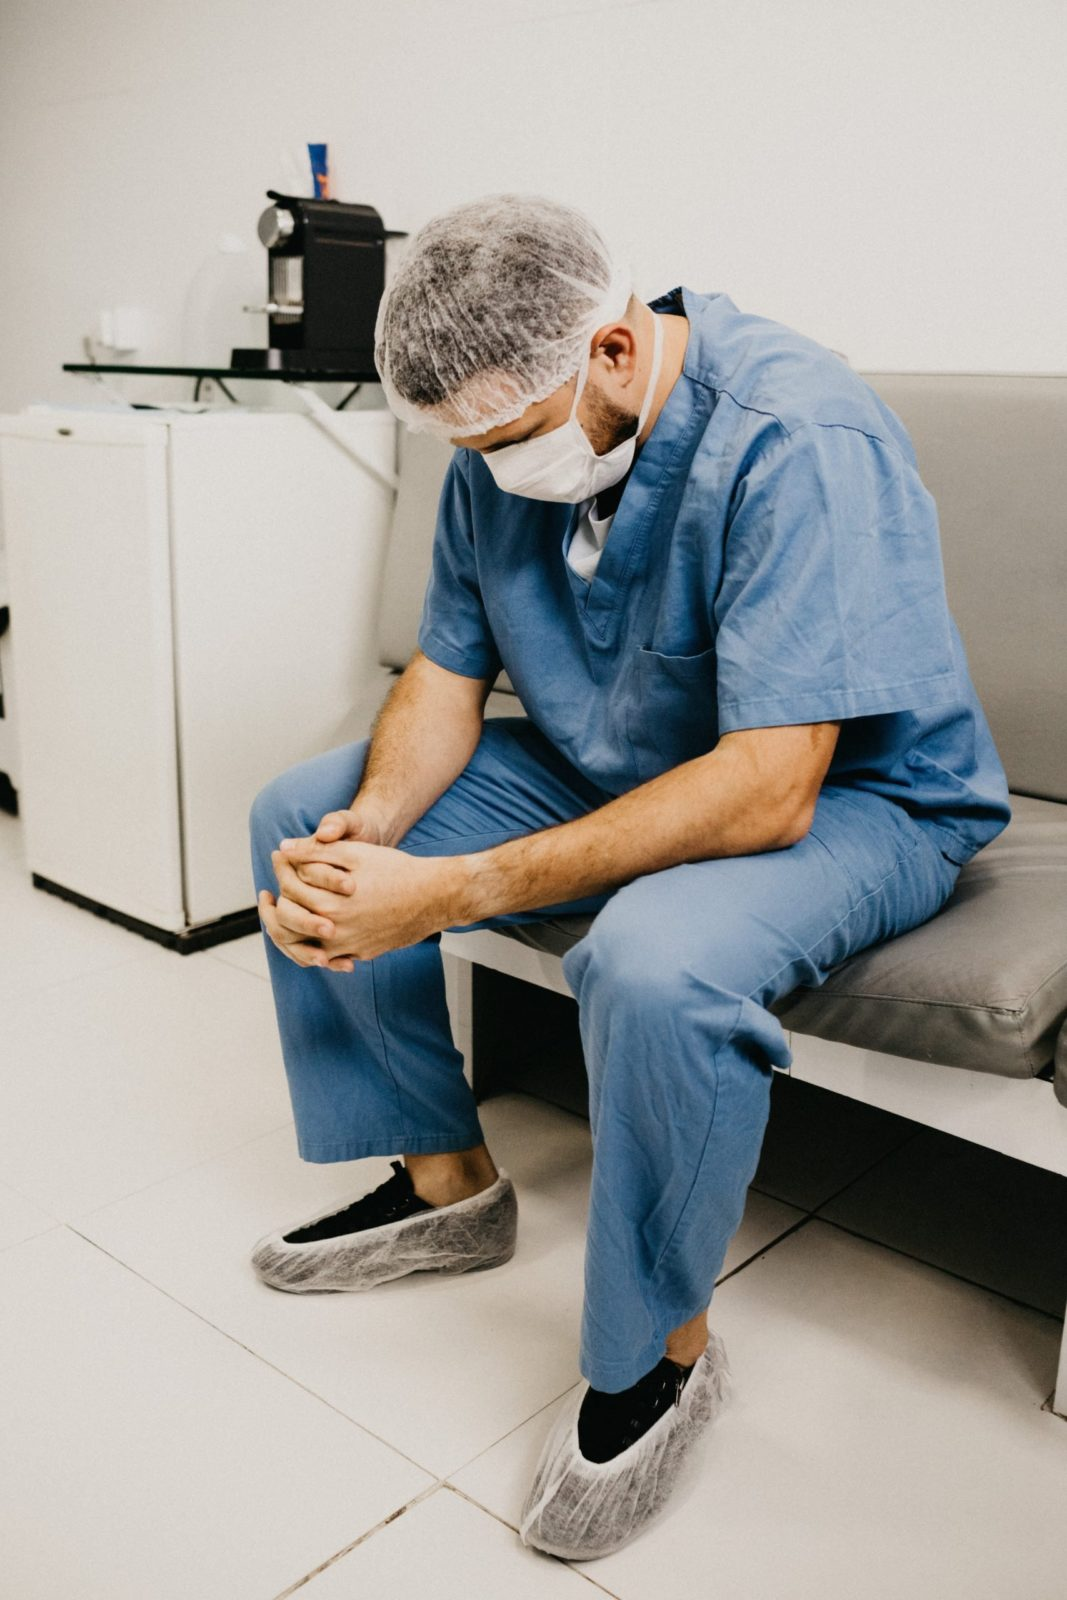 A tired doctor after dealing with coronavirus patients